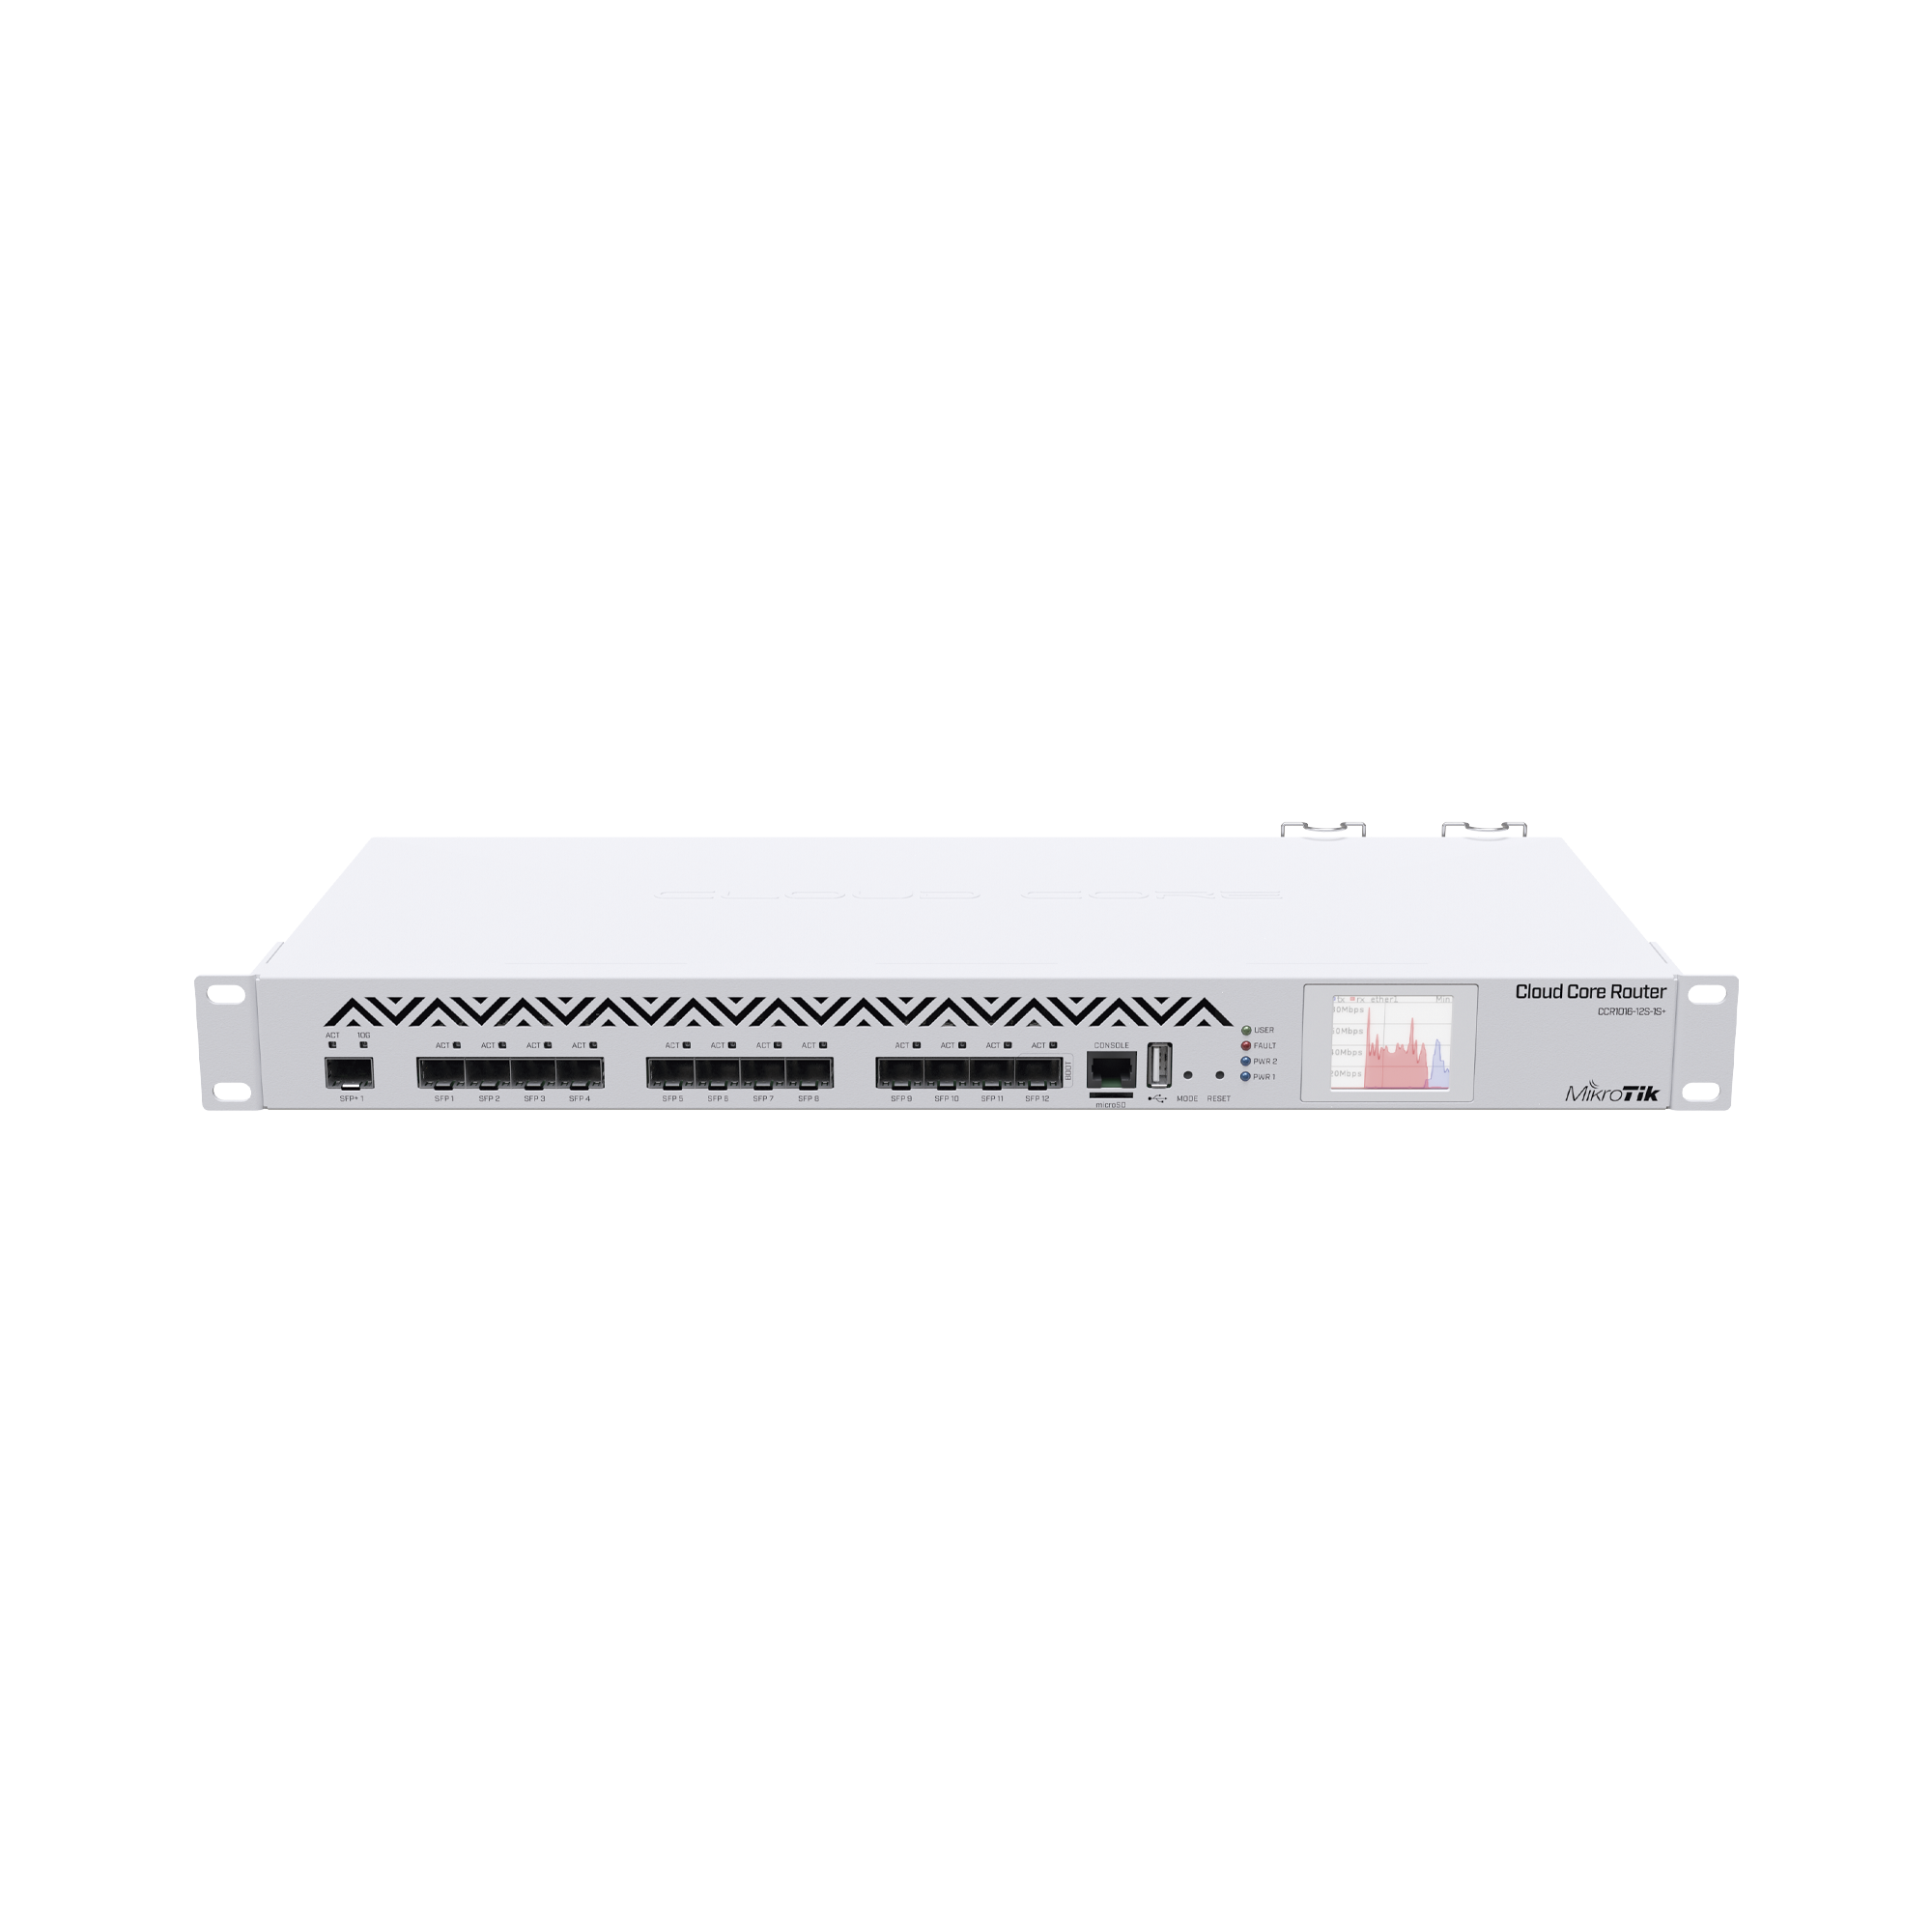 (CCR1016-12S-1S+) Cloud Core Router 12 puertos SFP, 1 SFP+ 10G, c/fuente redundante